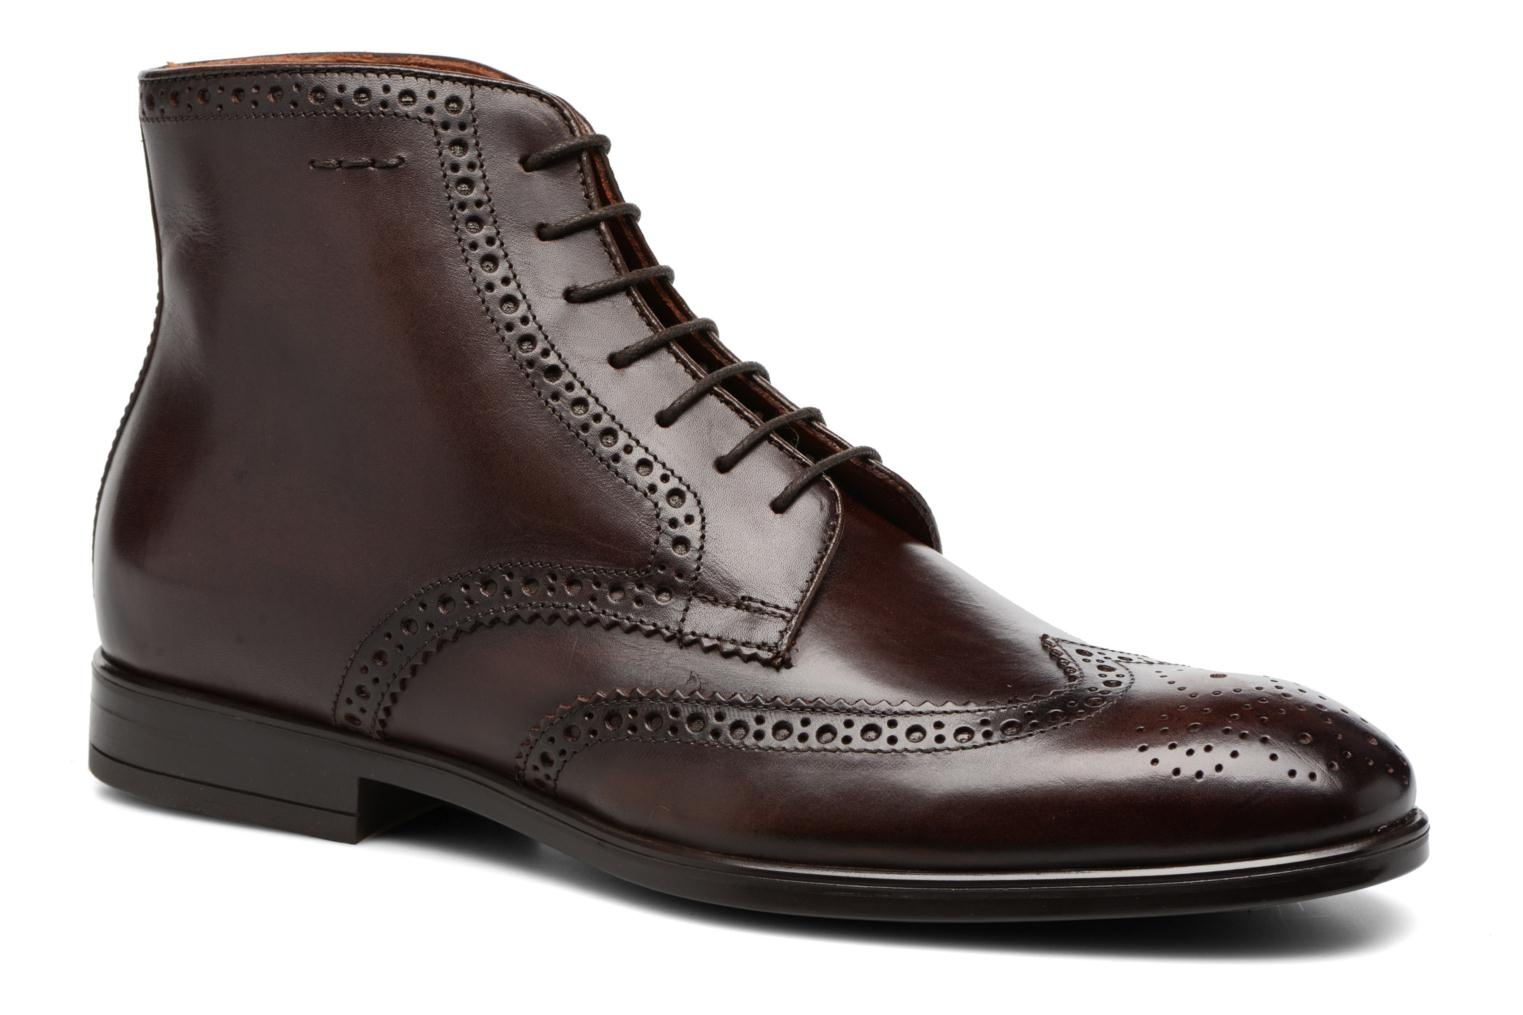 Marques Chaussure homme Marvin&Co homme Thomley Dakota Choco